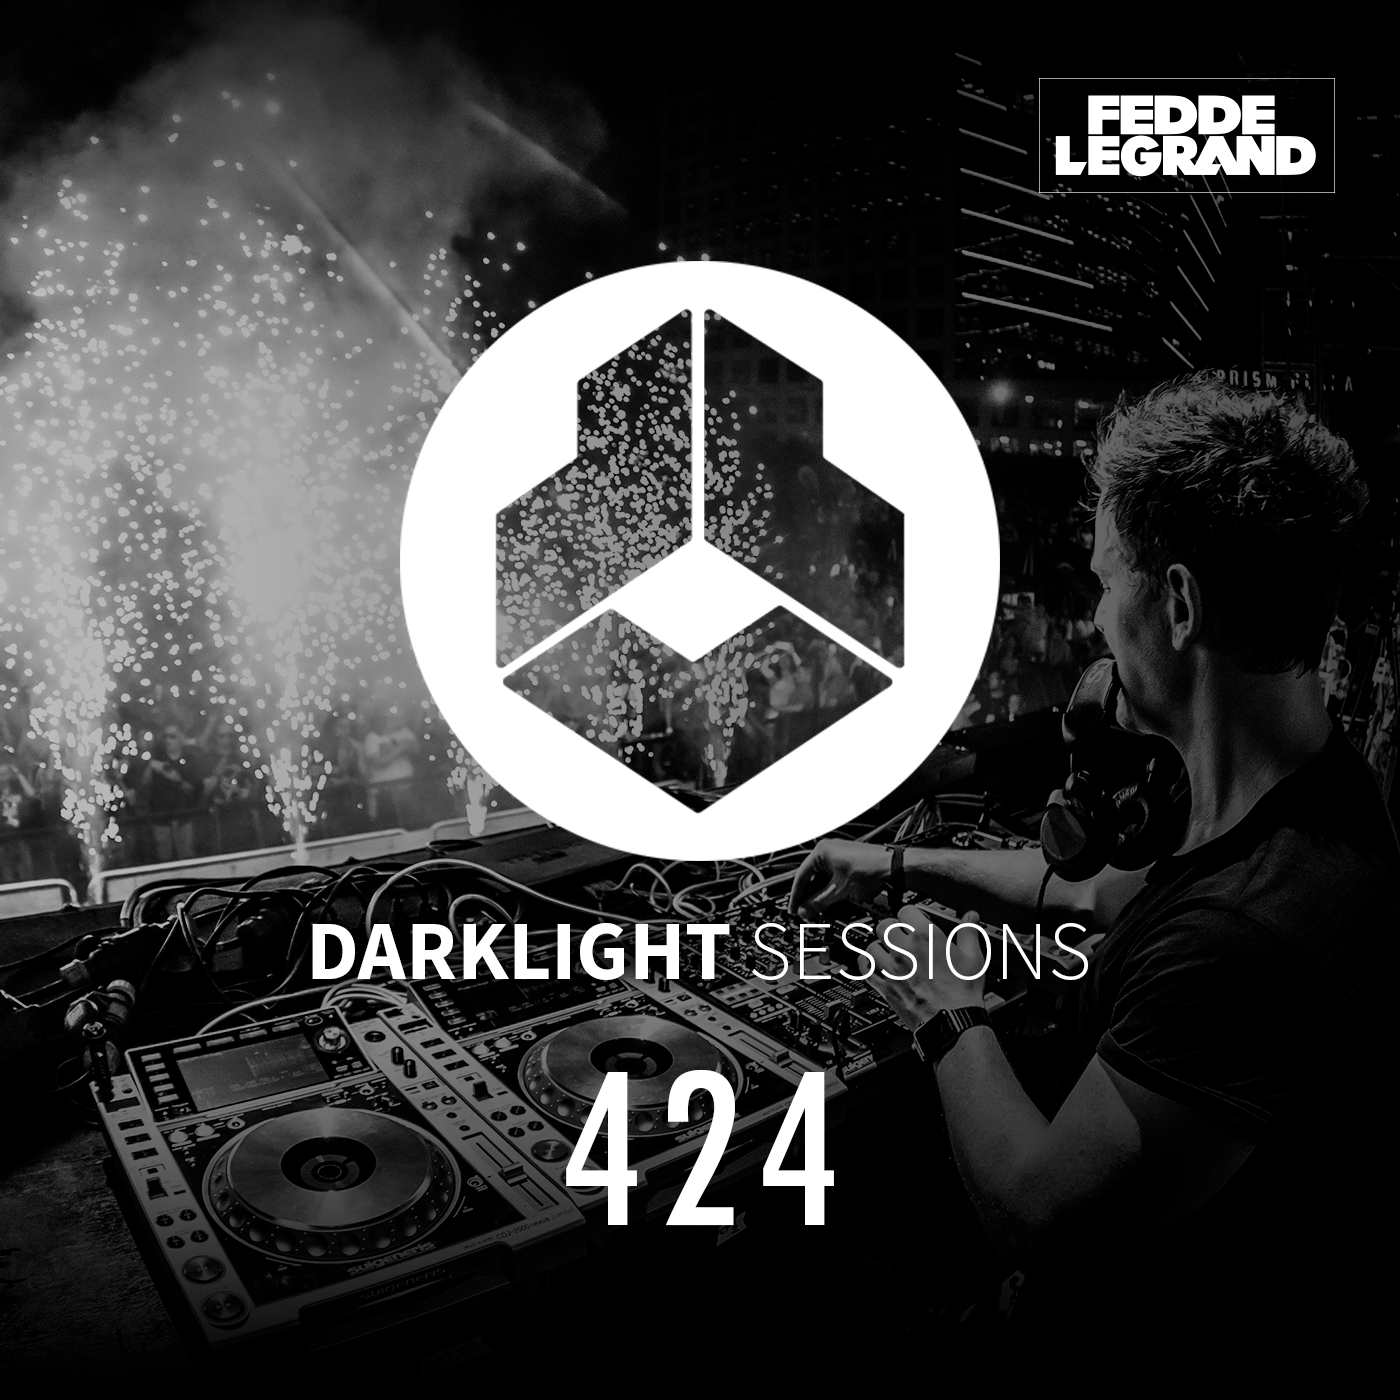 Darklight Sessions 424